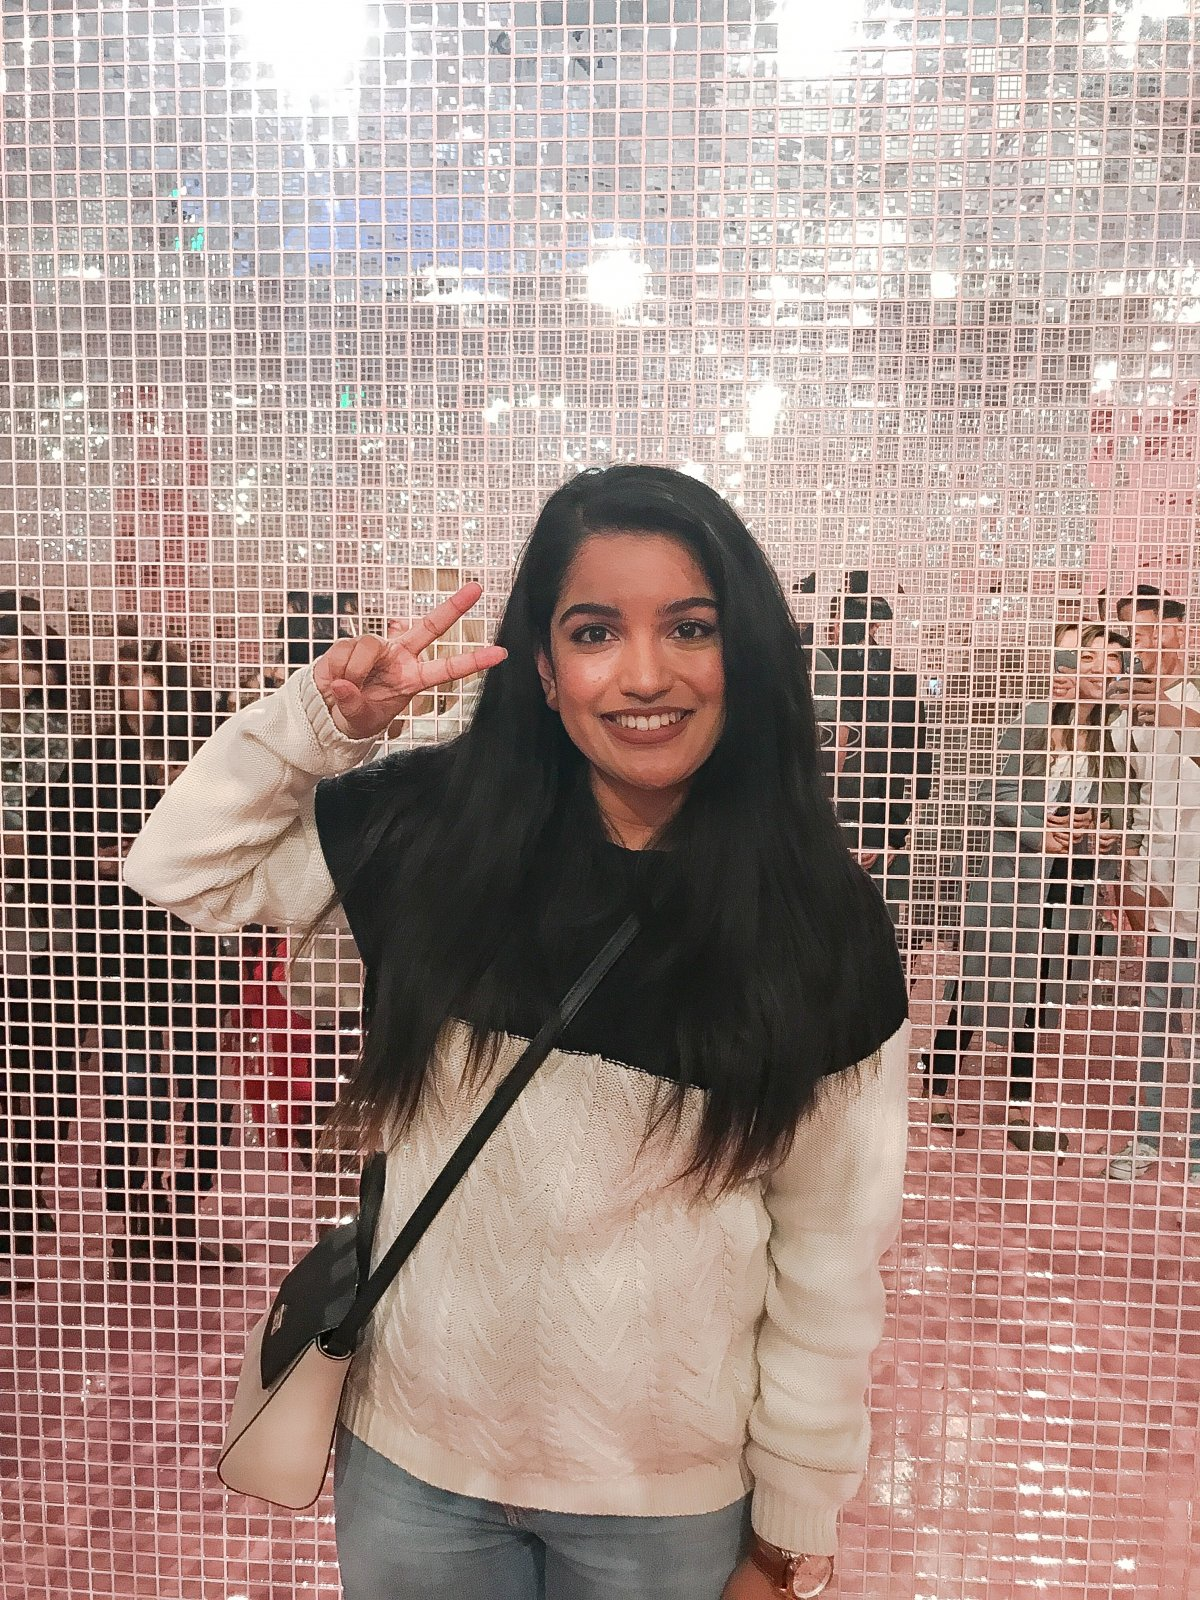 Museum of Ice Cream Mirror Glitter Wall Pose